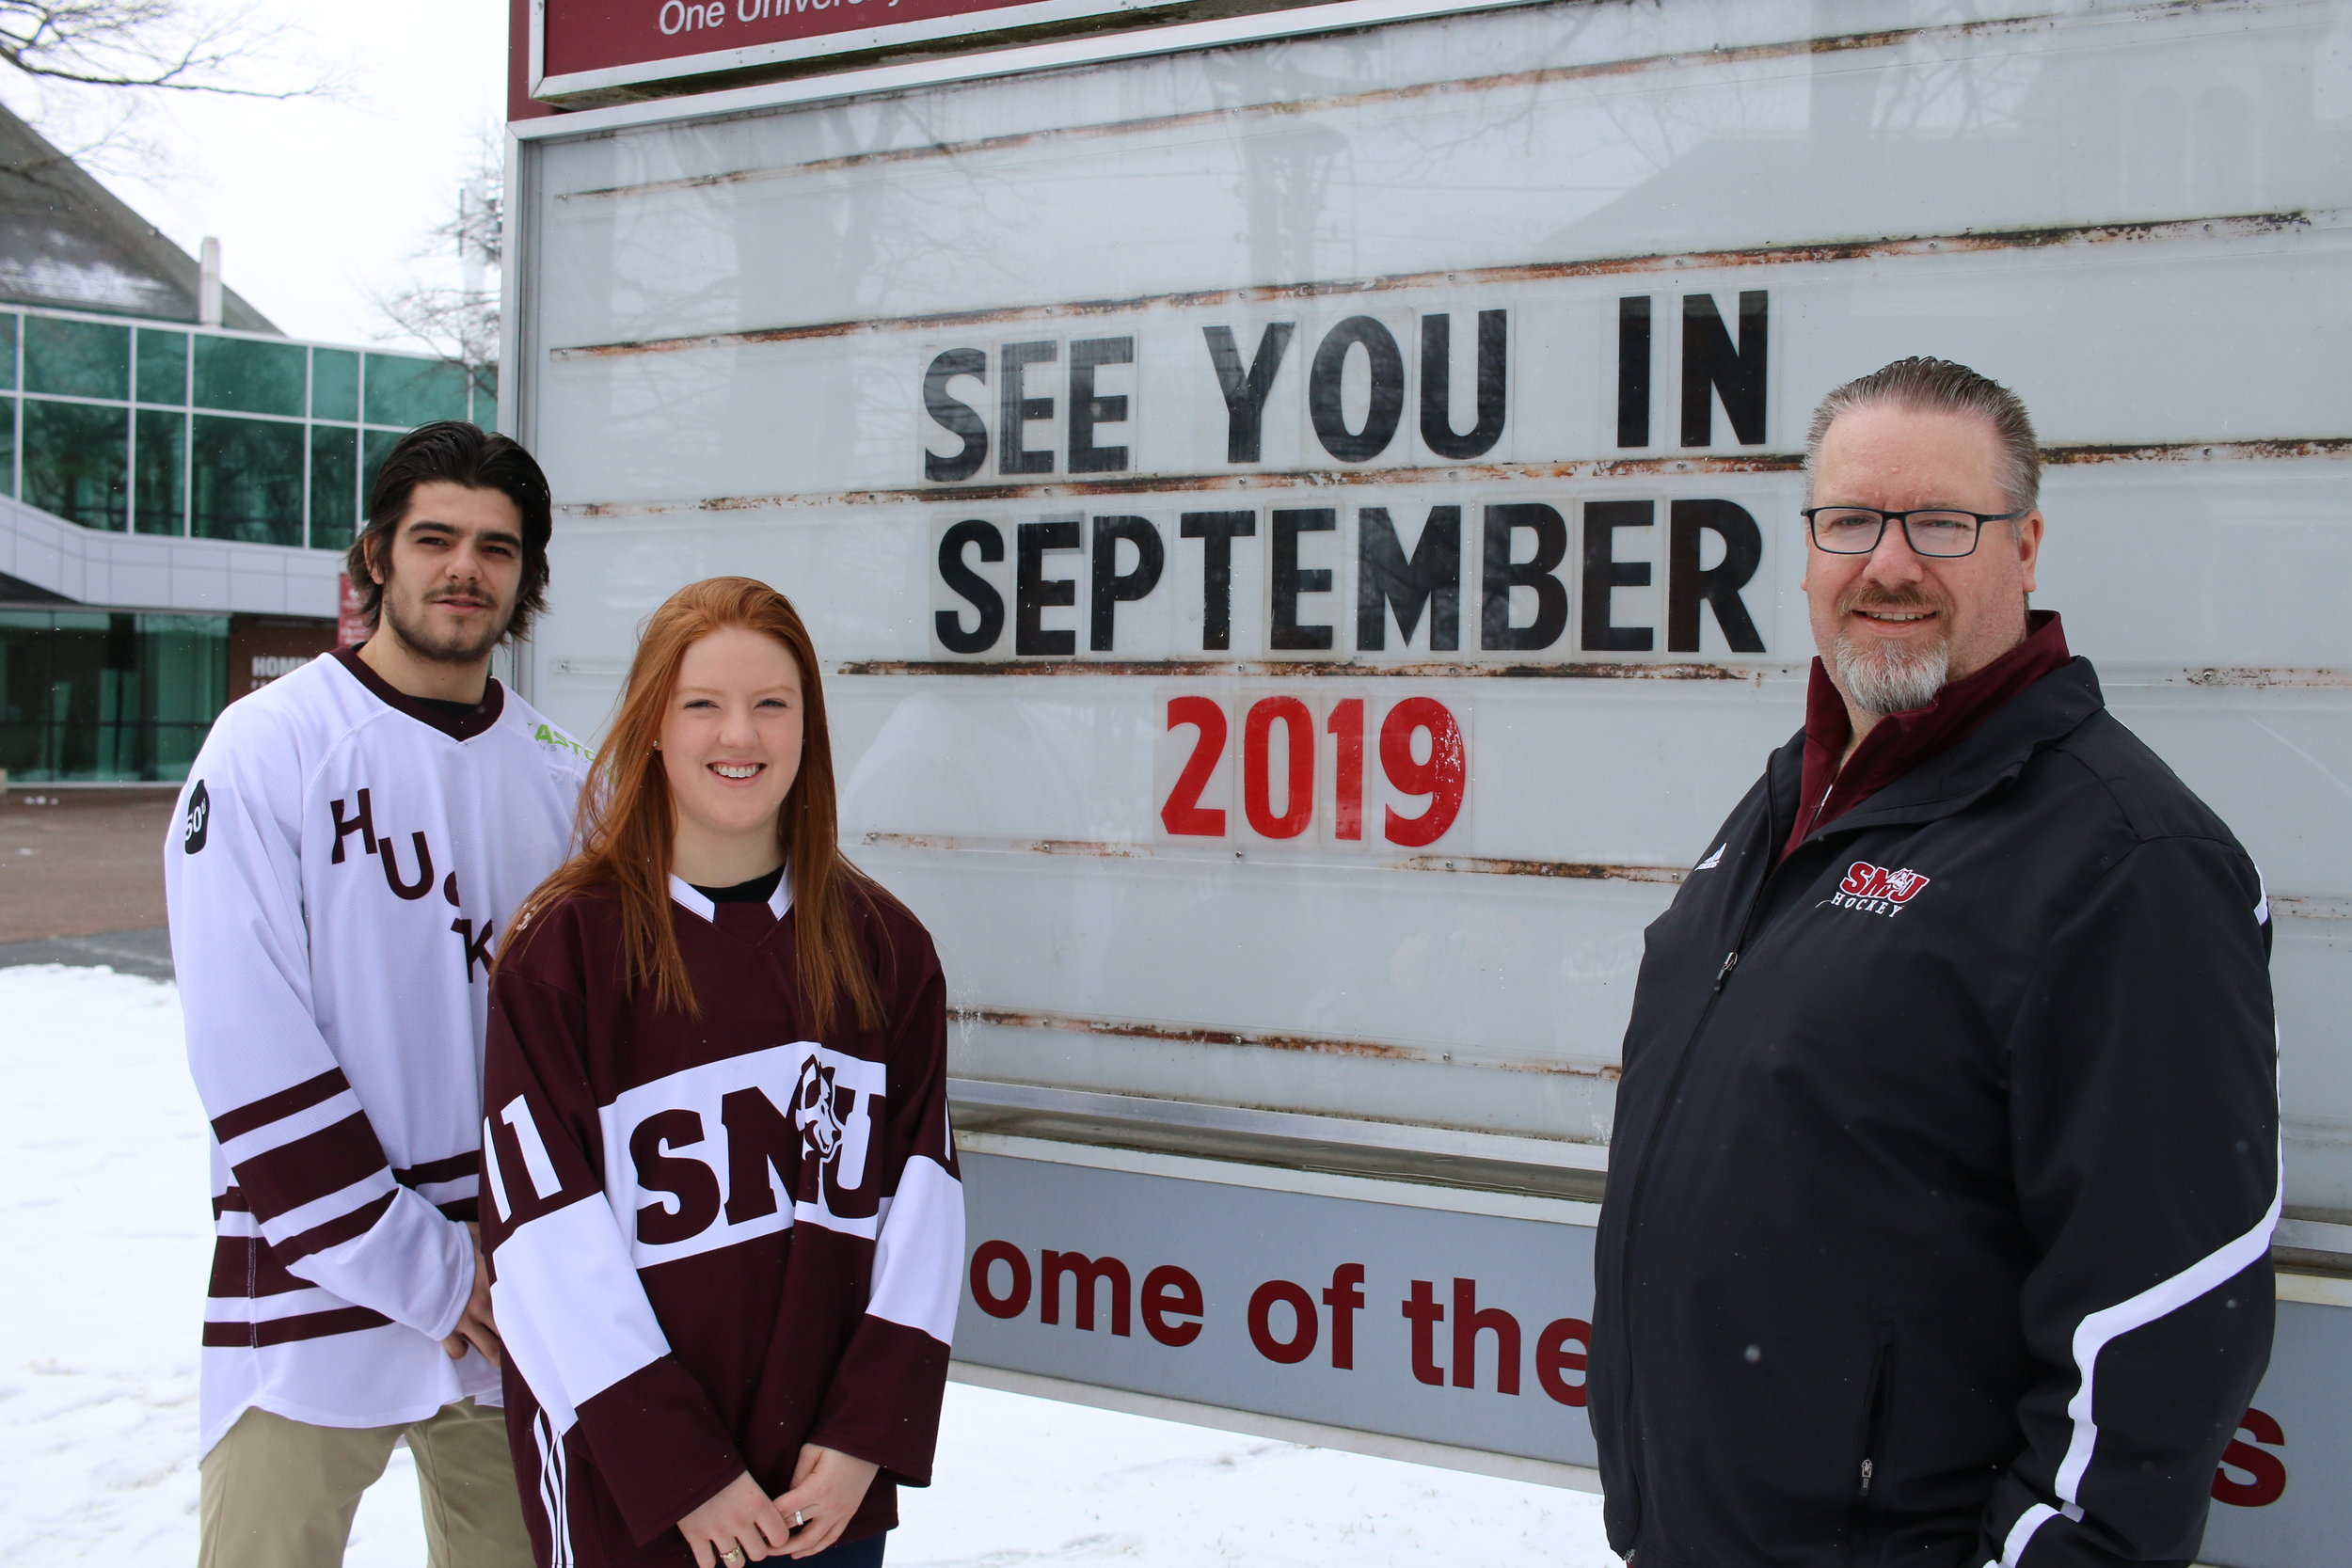 Saint Mary's Huskies Anthony Repaci (3rd year, Psychology), Siobhan Birch (2nd year, Commerce) and Athletics and Recreation Director Scott Gray, share the great news of the new arena coming to campus in 2019.